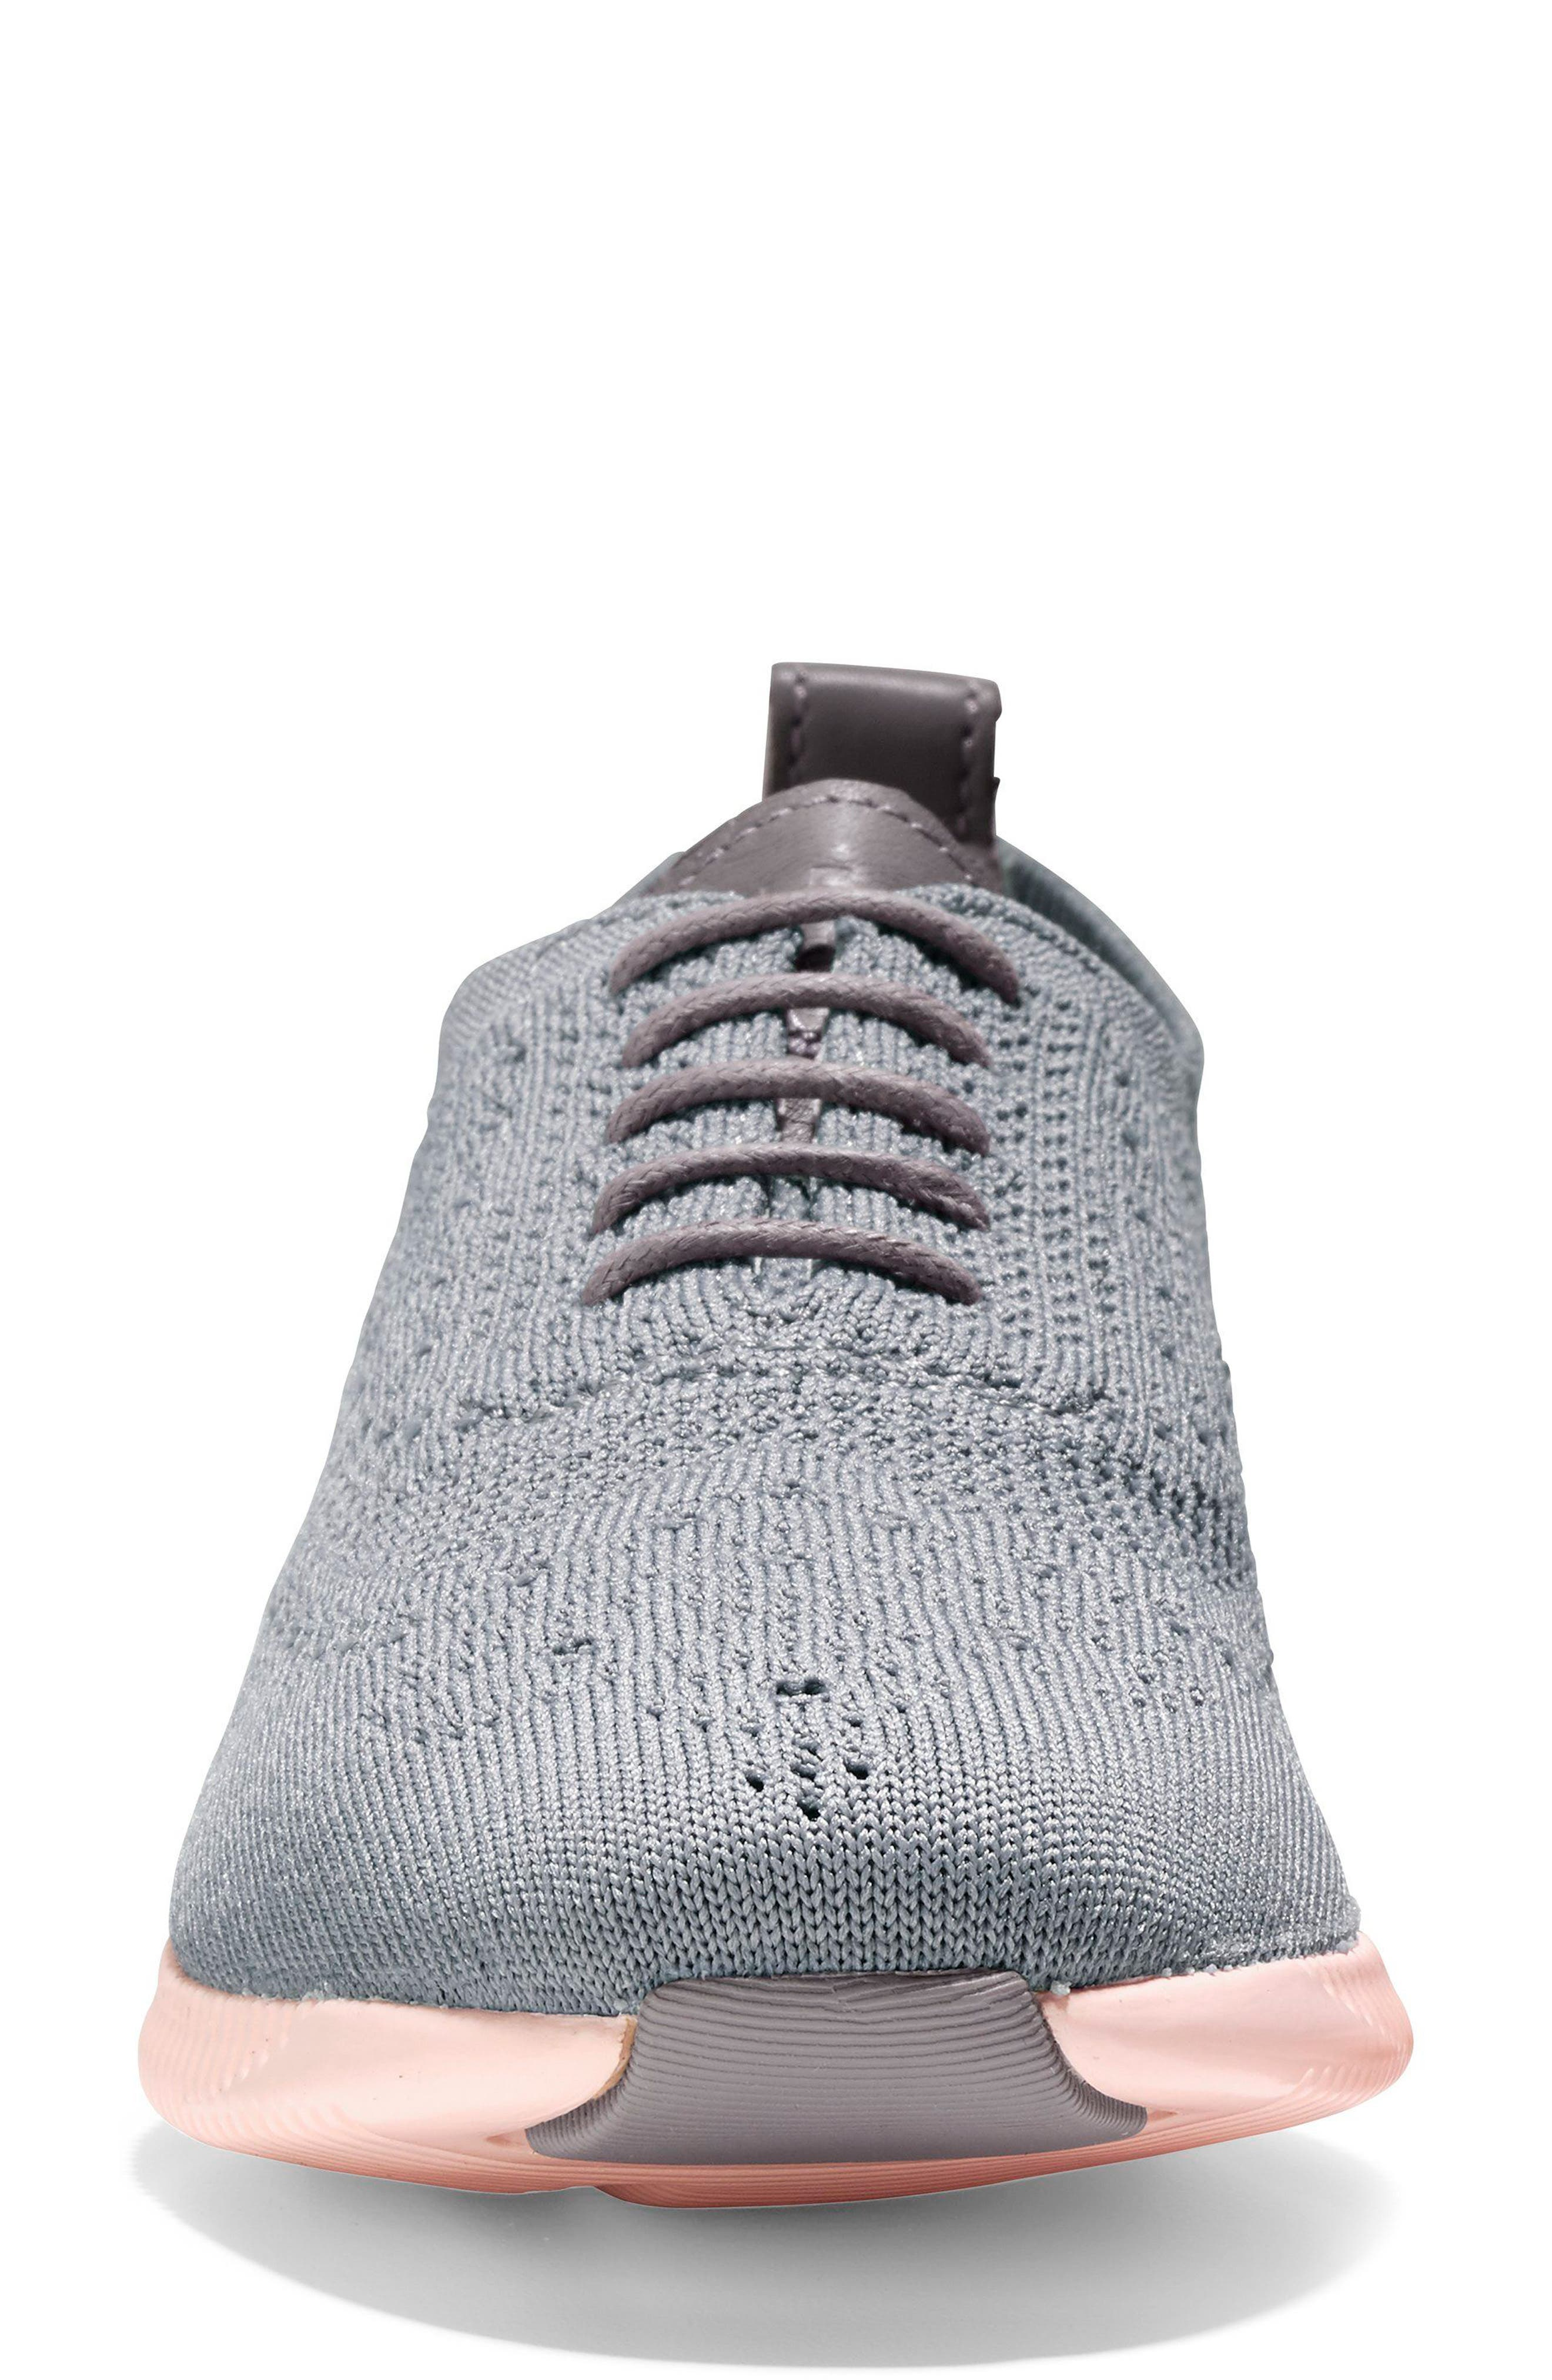 2.ZERØGRAND Stitchlite Wingtip Sneaker,                             Alternate thumbnail 4, color,                             Ironstone Knit Fabric